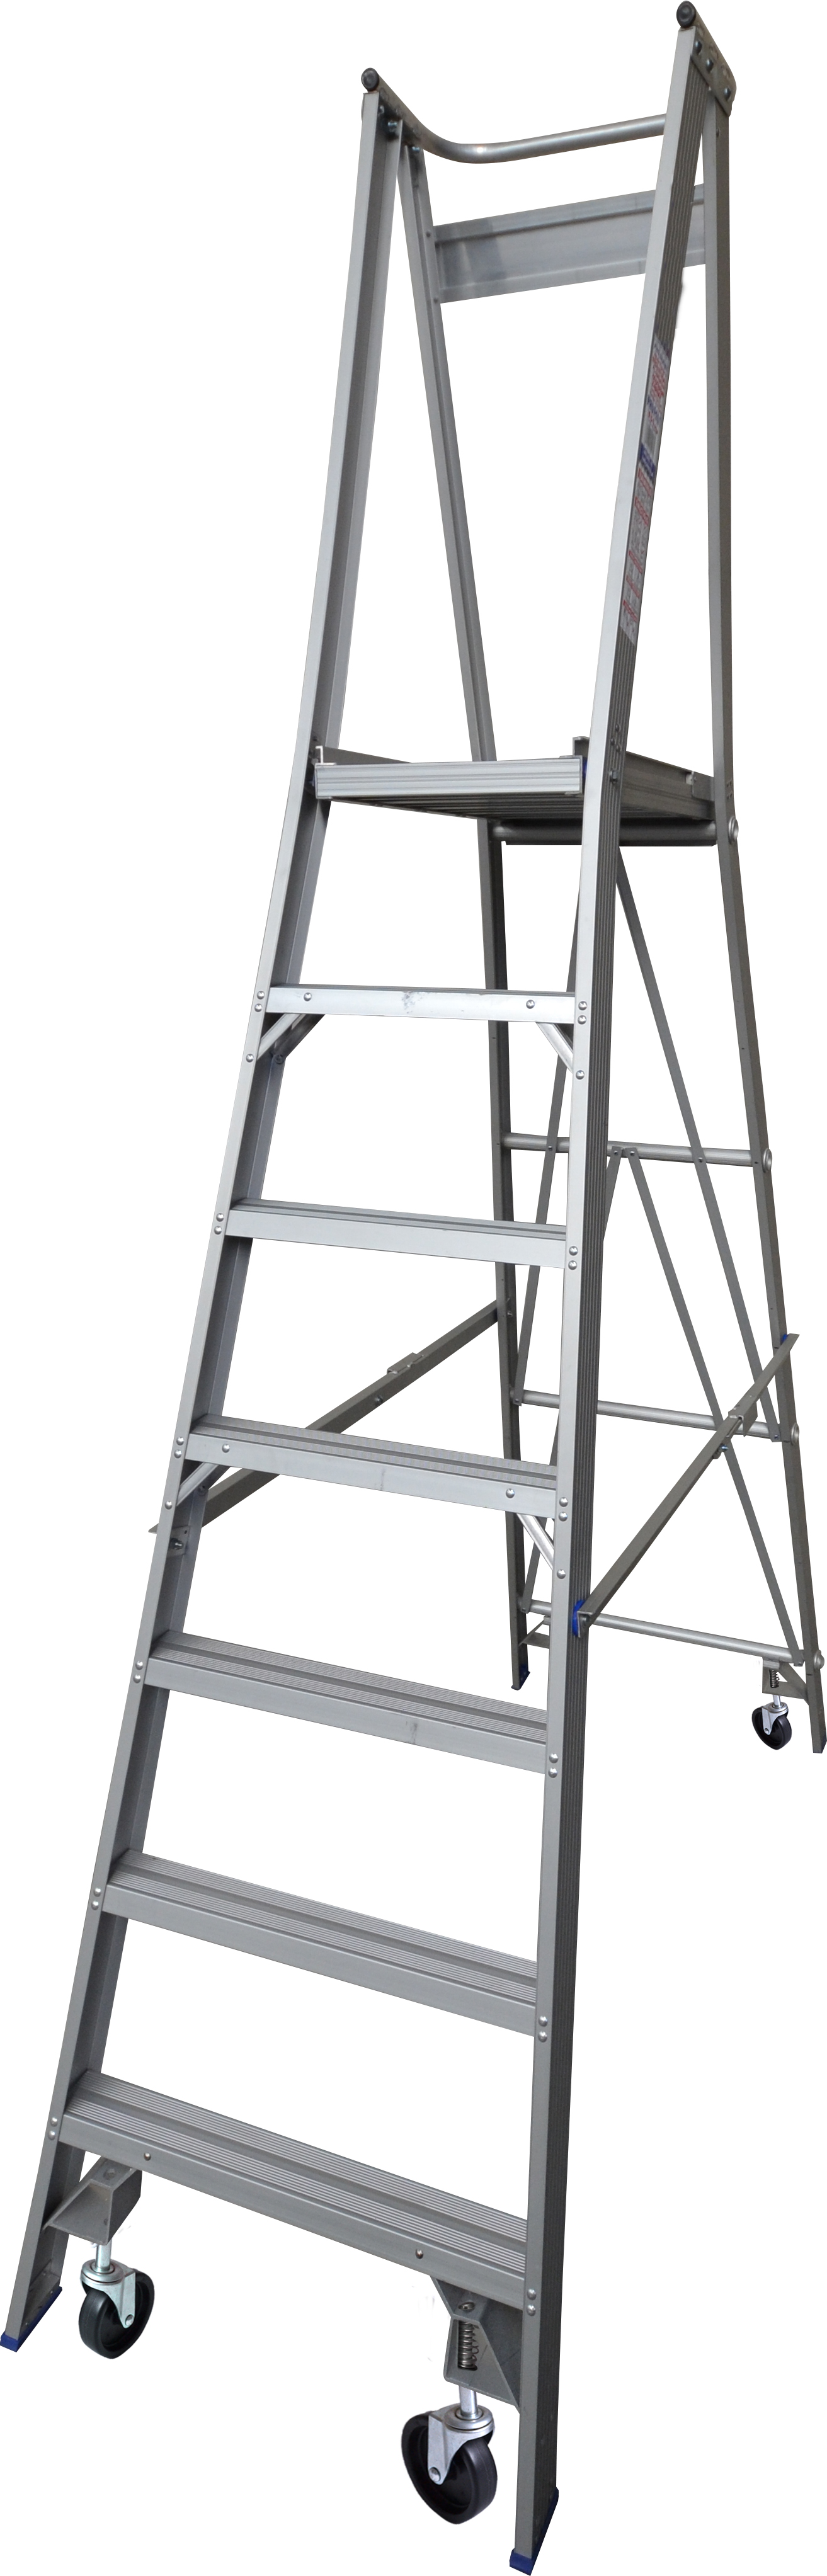 Our 7 step aluminium platform ladders have 150kg capacity, 2.1M platform height & 3.0M total height. It's constructed using high tensile structural aluminium alloy, solid 90cm high guard rail, anti slip work platform & moulded feet for added safety.